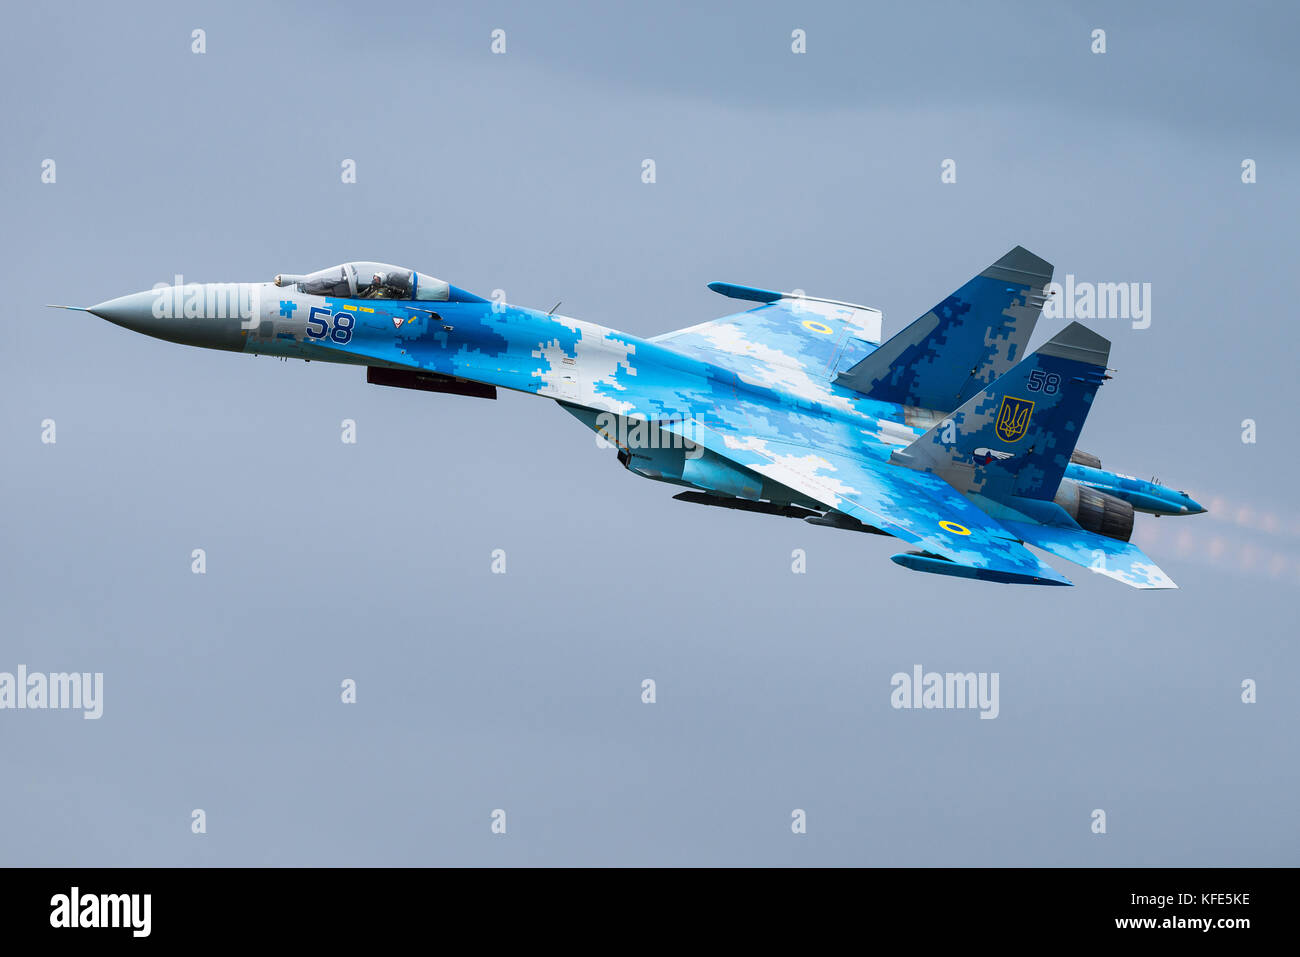 A Ukrainian Air Force Sukhoi Su-27 'Flanker' fighter jet at an airshow in Fairford, United Kingdom. - Stock Image